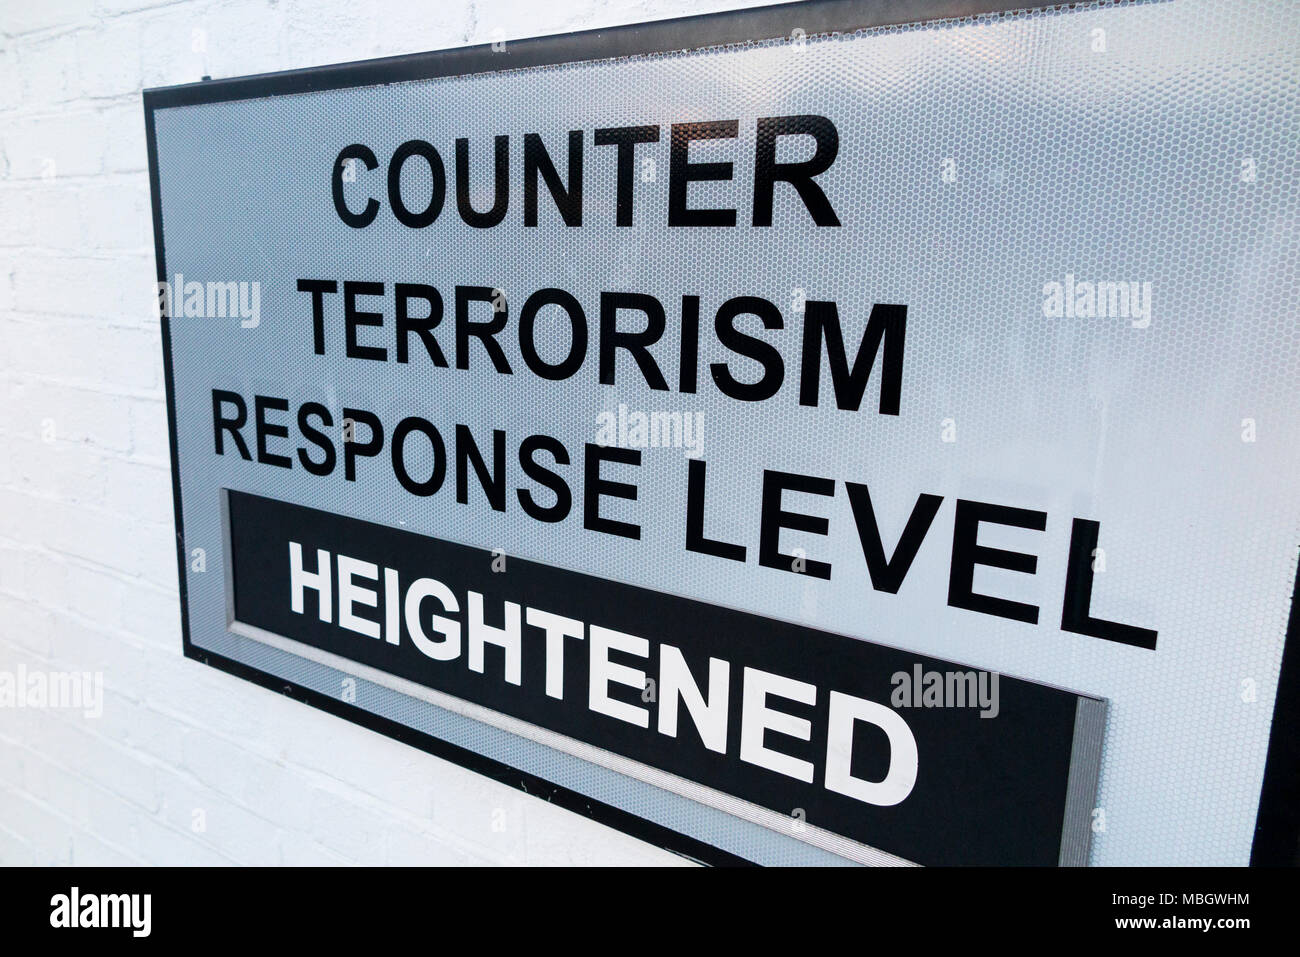 Warning sign at the historic Naval dockyard, Portsmouth, to show heightened counter terrorism threat level in force at that time on the Naval base. UK - Stock Image